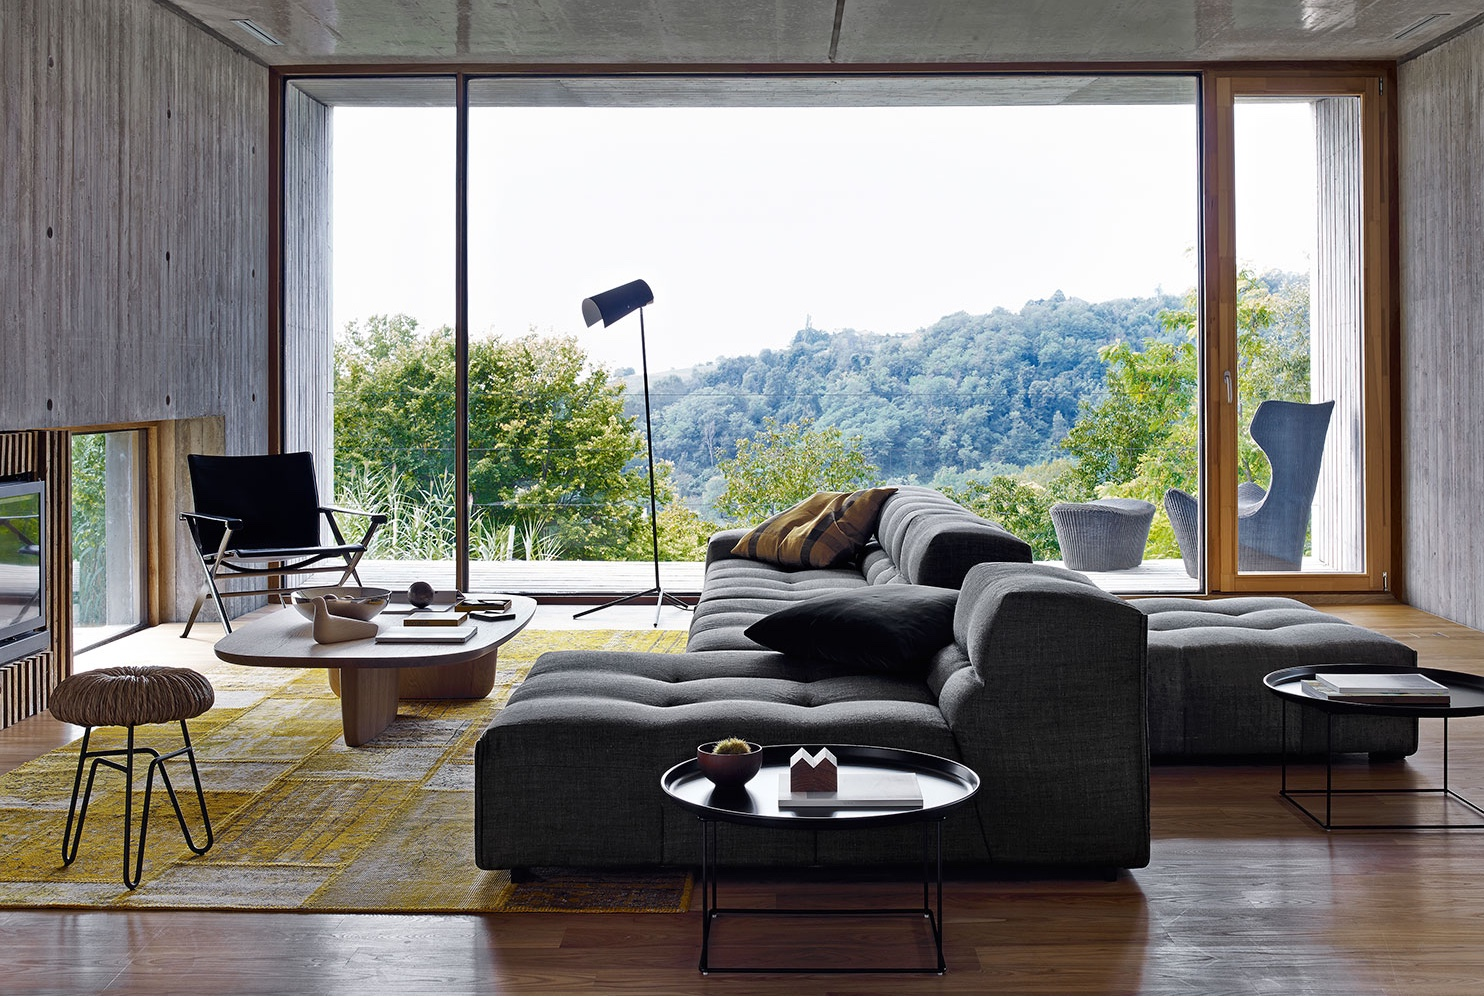 B&B Italia was established in 1966 byPier Ambrogio Busnelli. In this image, products include theBeverly '14 armchair by Antonio Citterio and Patricia Urquiola's Tufty-Too sofa. Image© 2016 B&B ItaliaSPA.